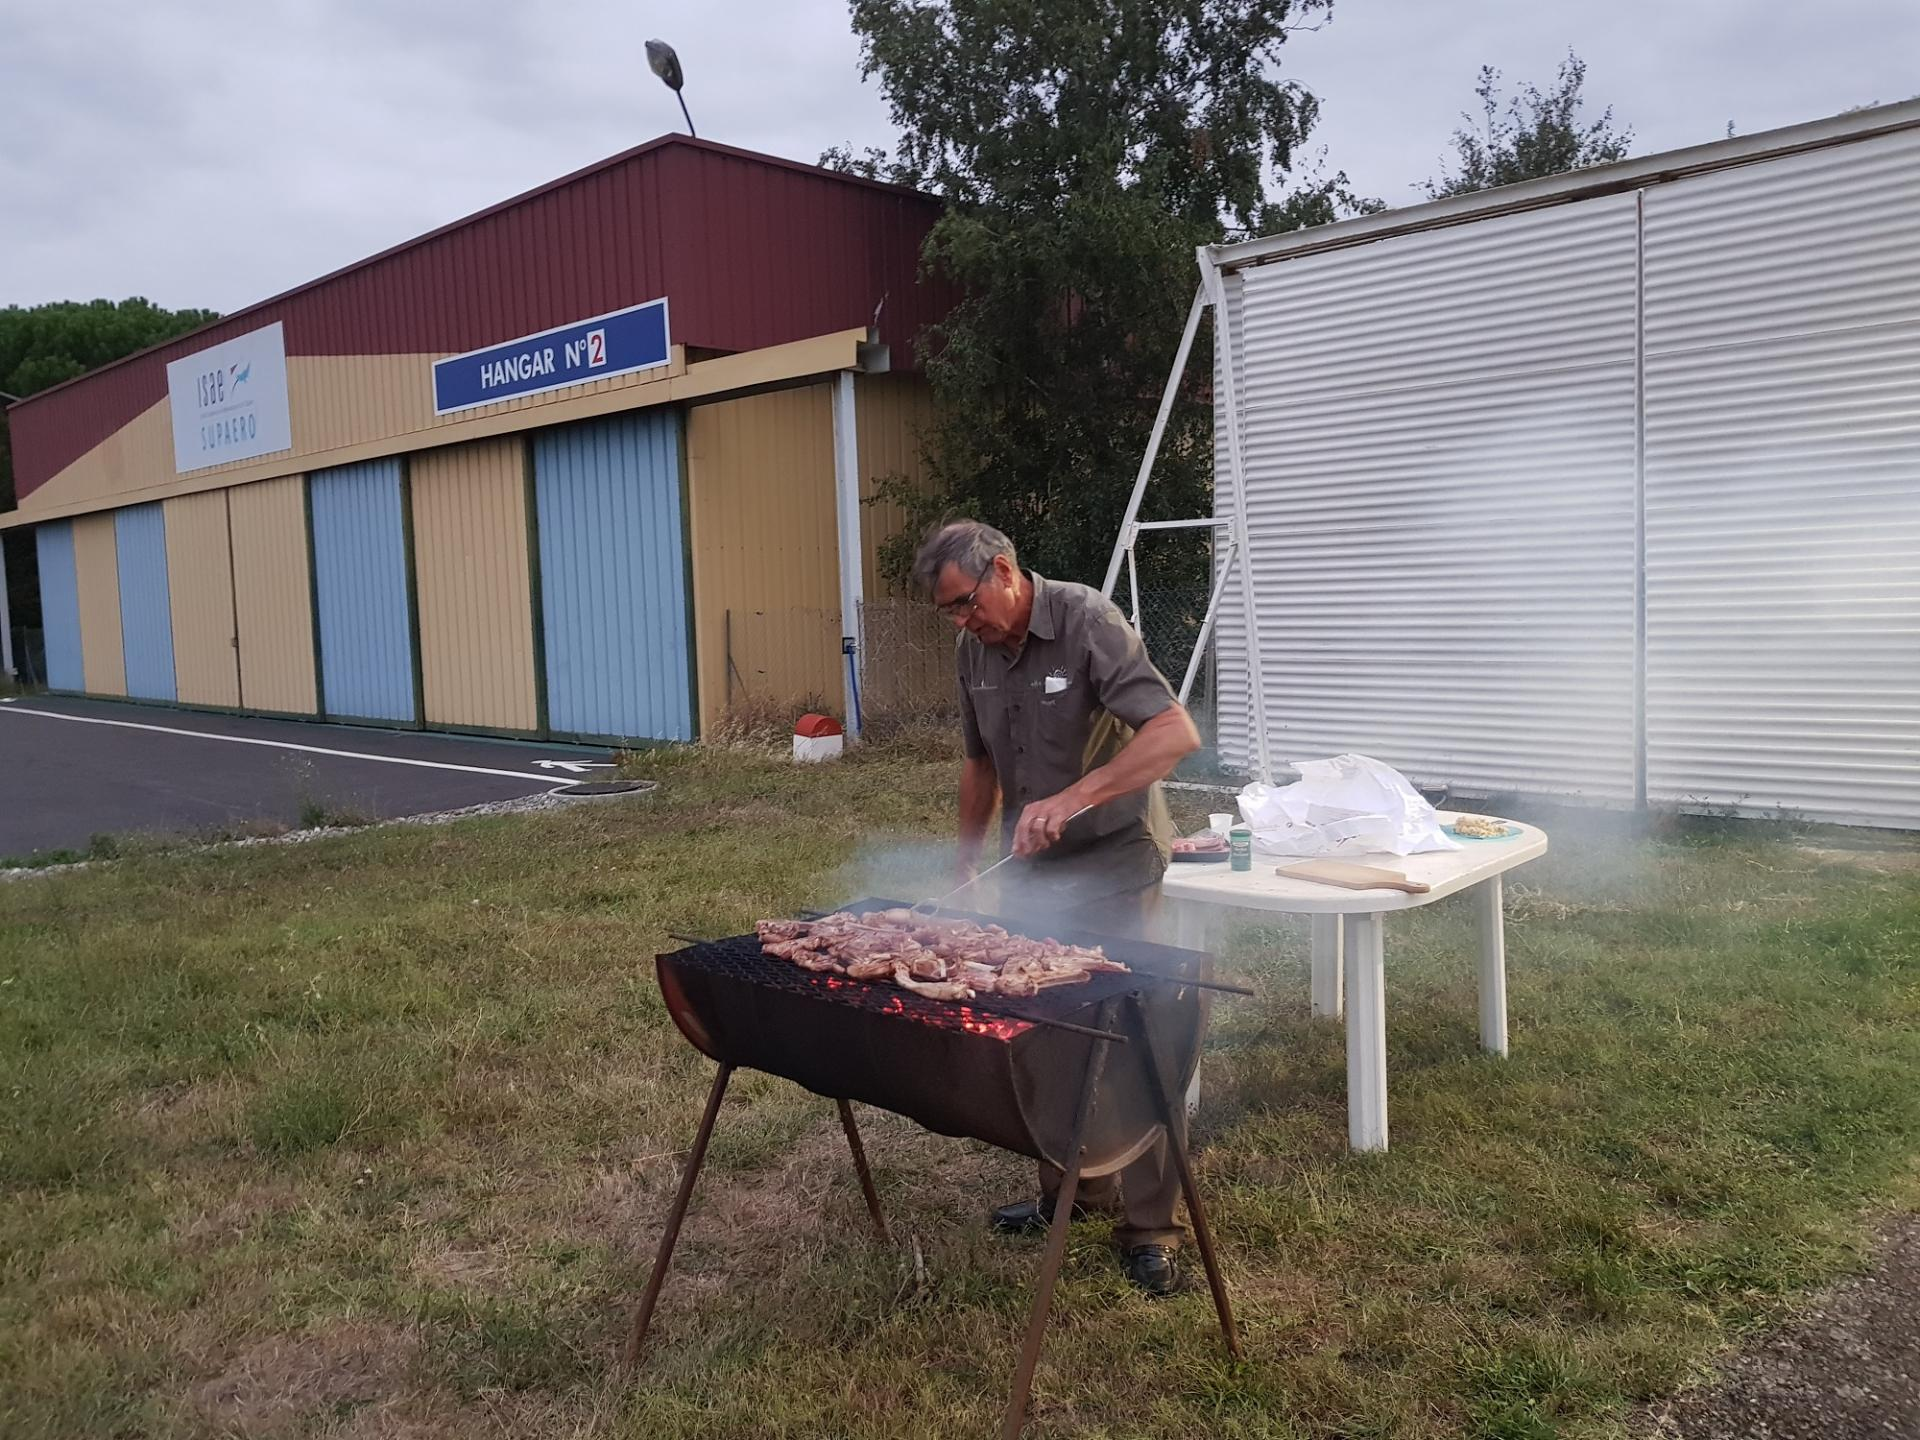 09 - Barbecue du 13 sep 18